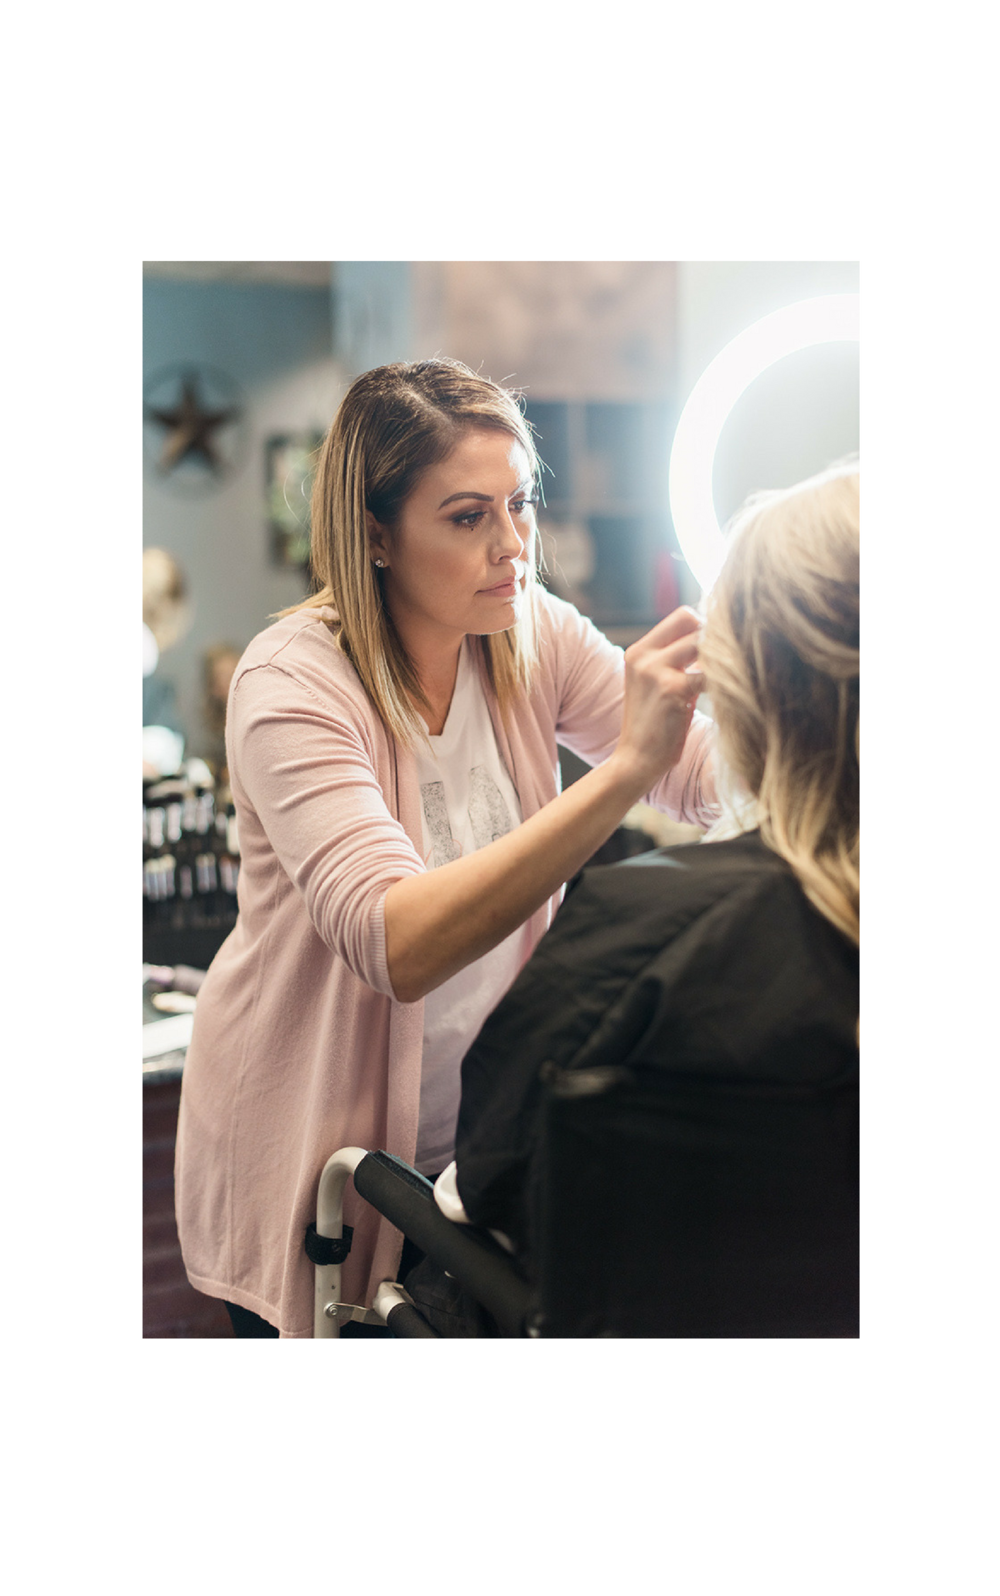 Meet Cass Marie...... - As the owner and an artist of Glam by Cass Marie Hair and Makeup, I have over 15 years of professional experience working within the beauty industry.